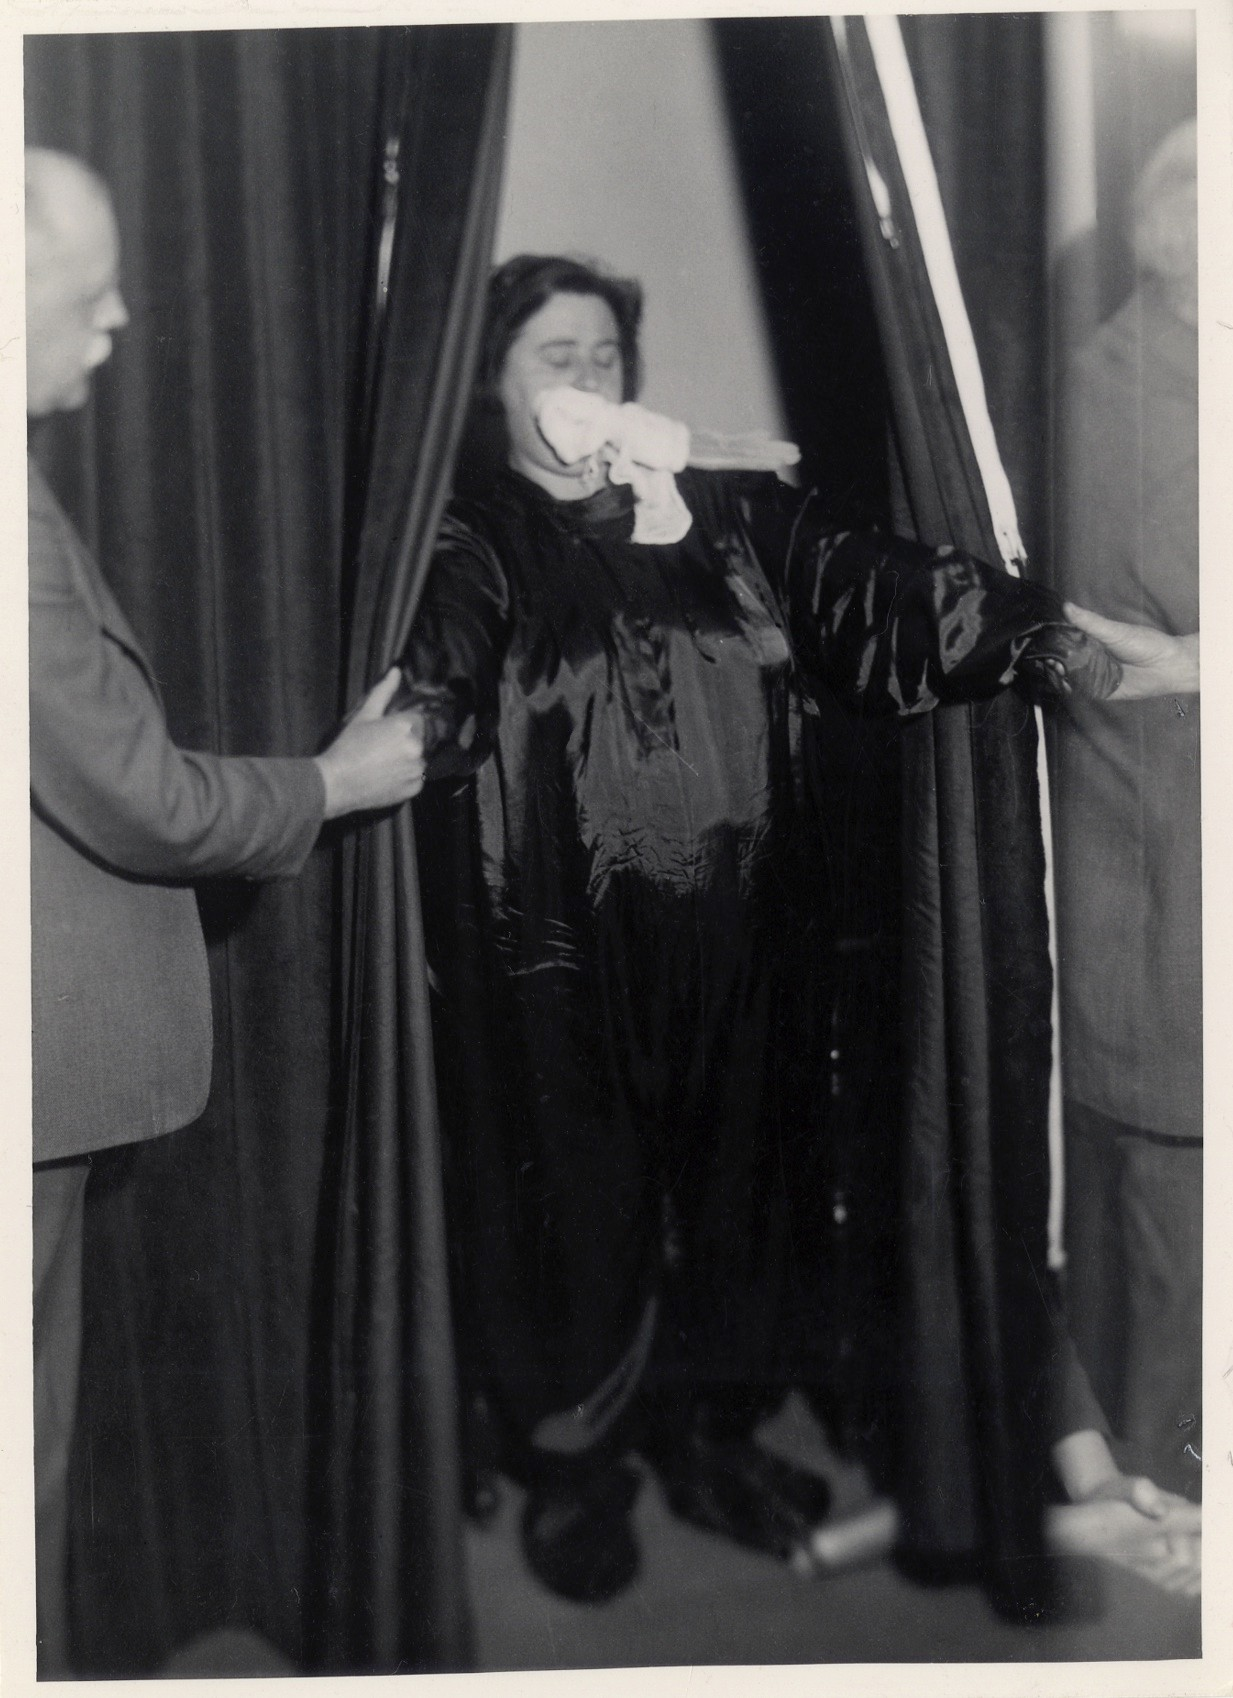 Helen Duncan, a 20th-century medium and spiritualist, allegedly summoned spirits draped in 'ectoplasm' – organic matter emitted from her body. In the 1930s she was denounced as a fraud, and in 1944 prosecuted under the 1735 Witchcra Act, which forbade conjuring spirits. (Photo courtesy of Ashmolean Museum/University of London)